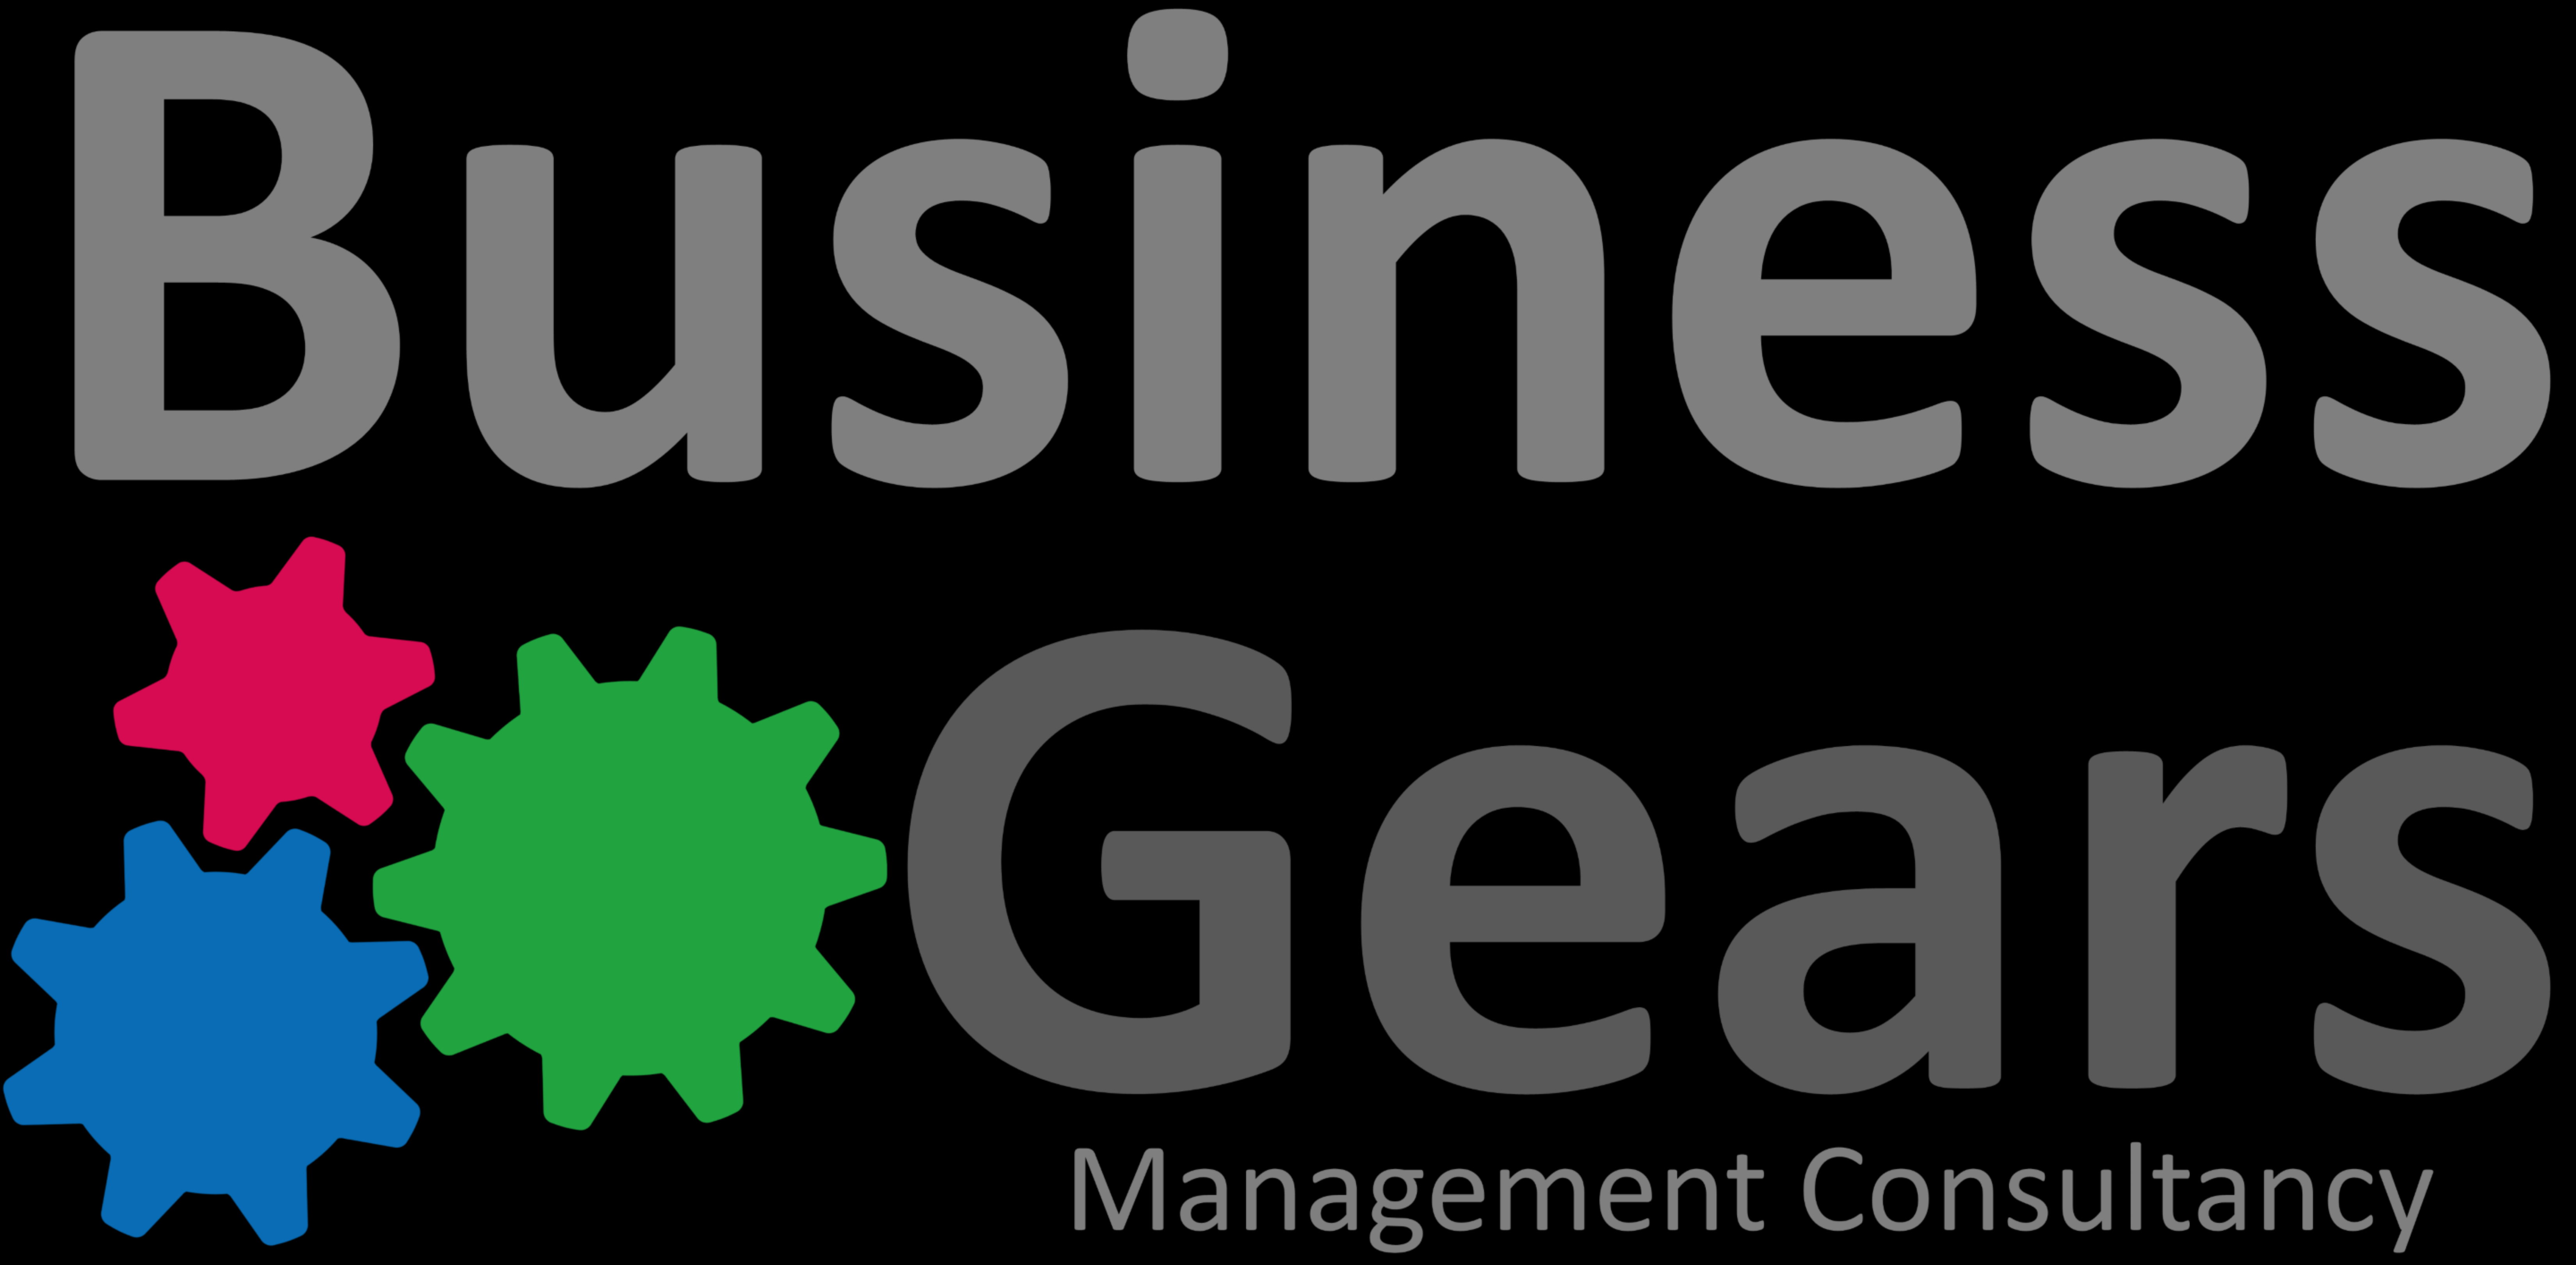 Business Gears Consultancy